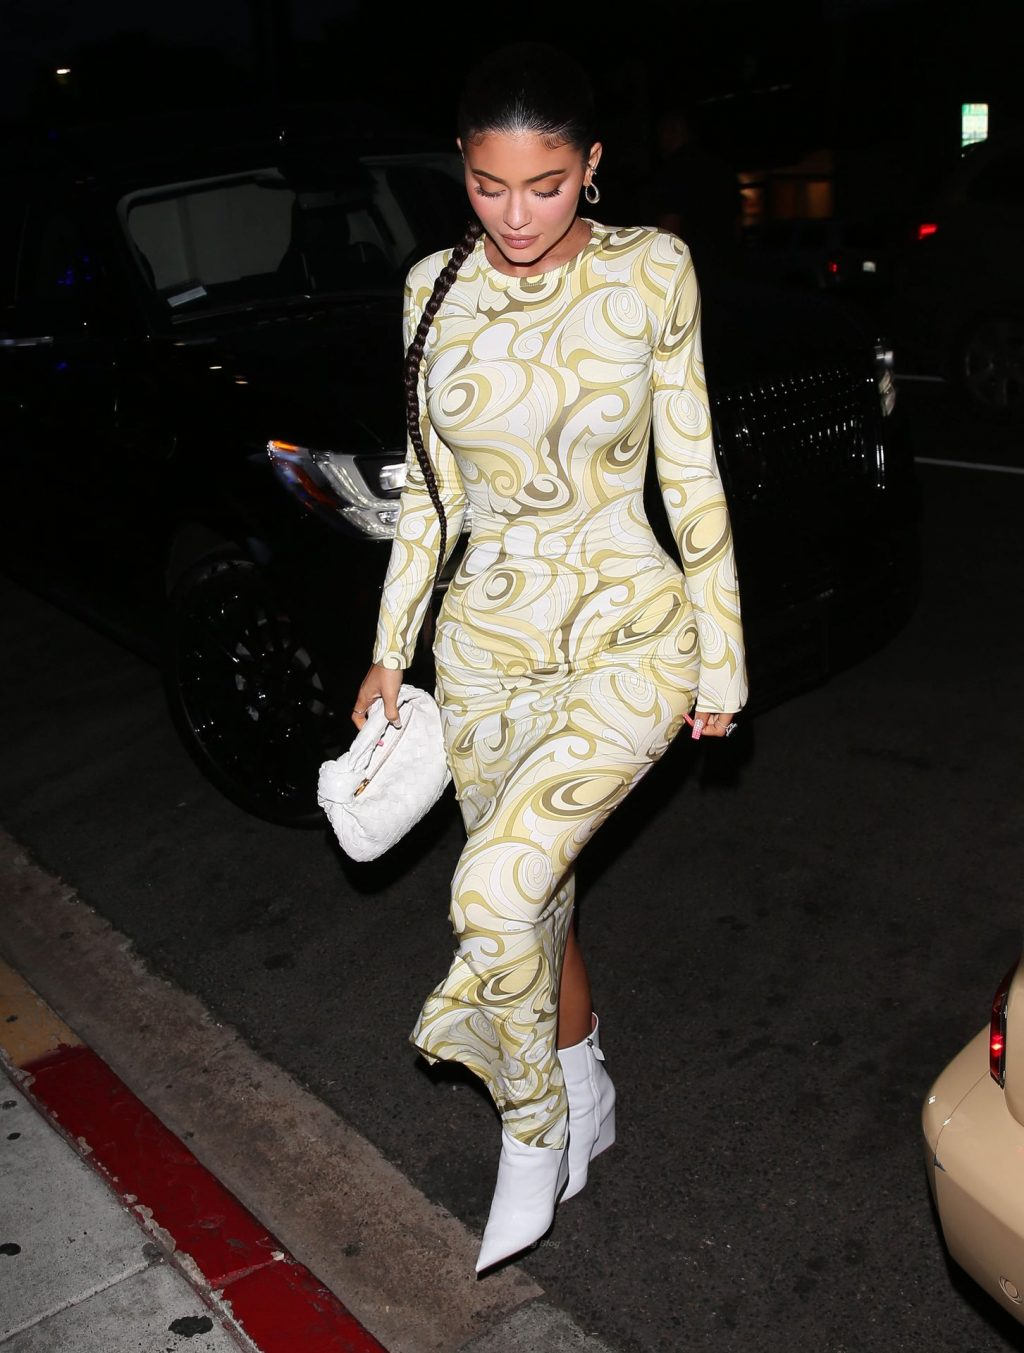 Kylie Jenner Steps Out Wearing a Stunning Dress at Nobu in WeHo (14 Photos)